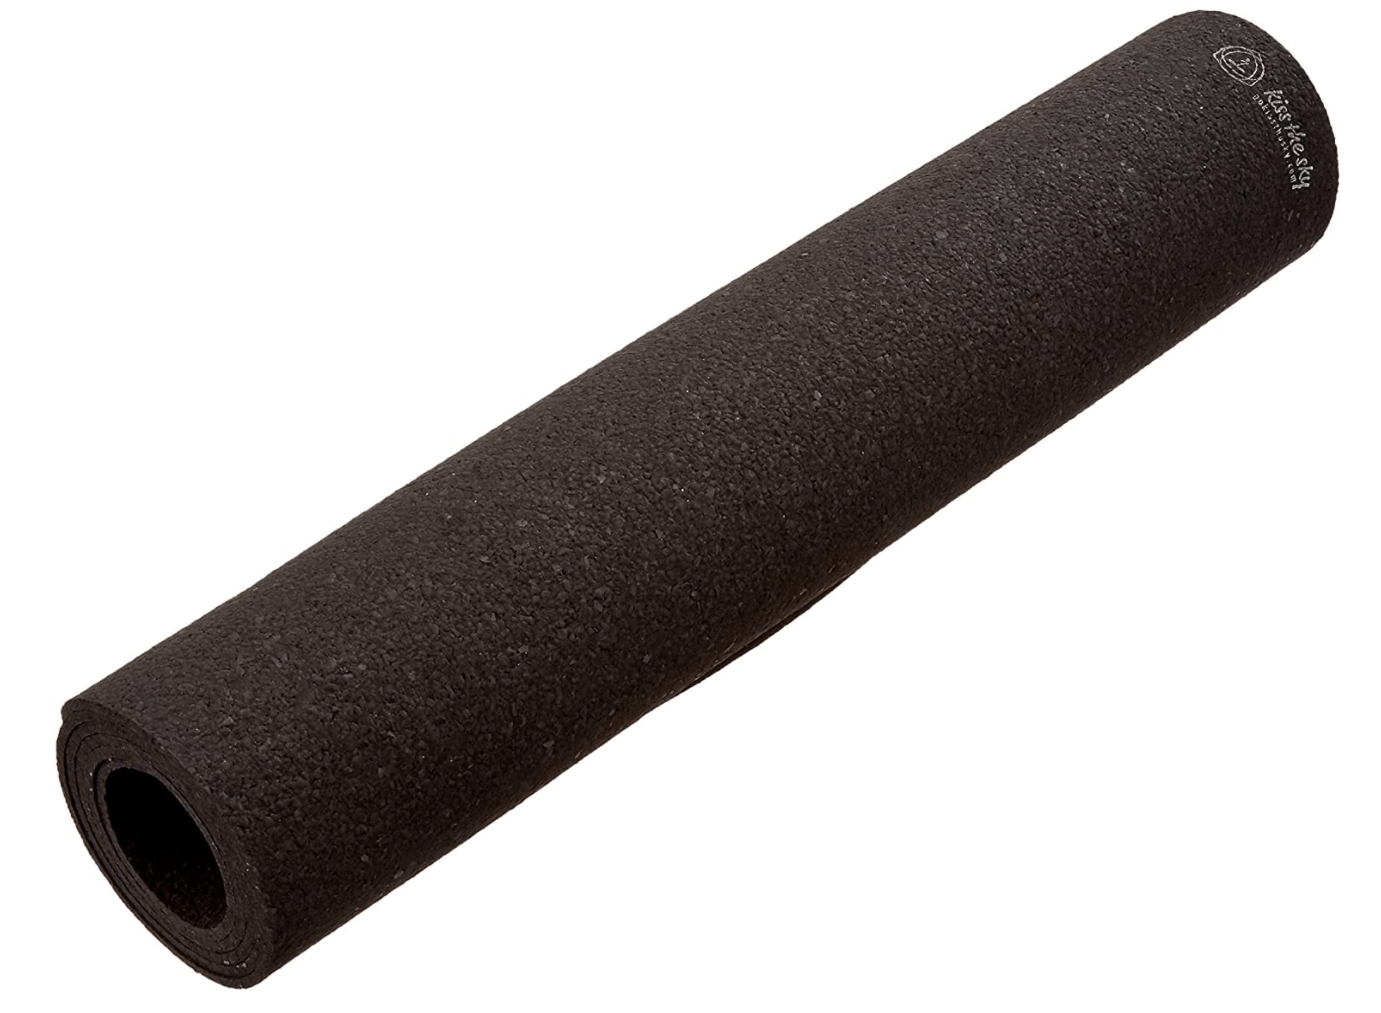 Recycled rubber yoga mat